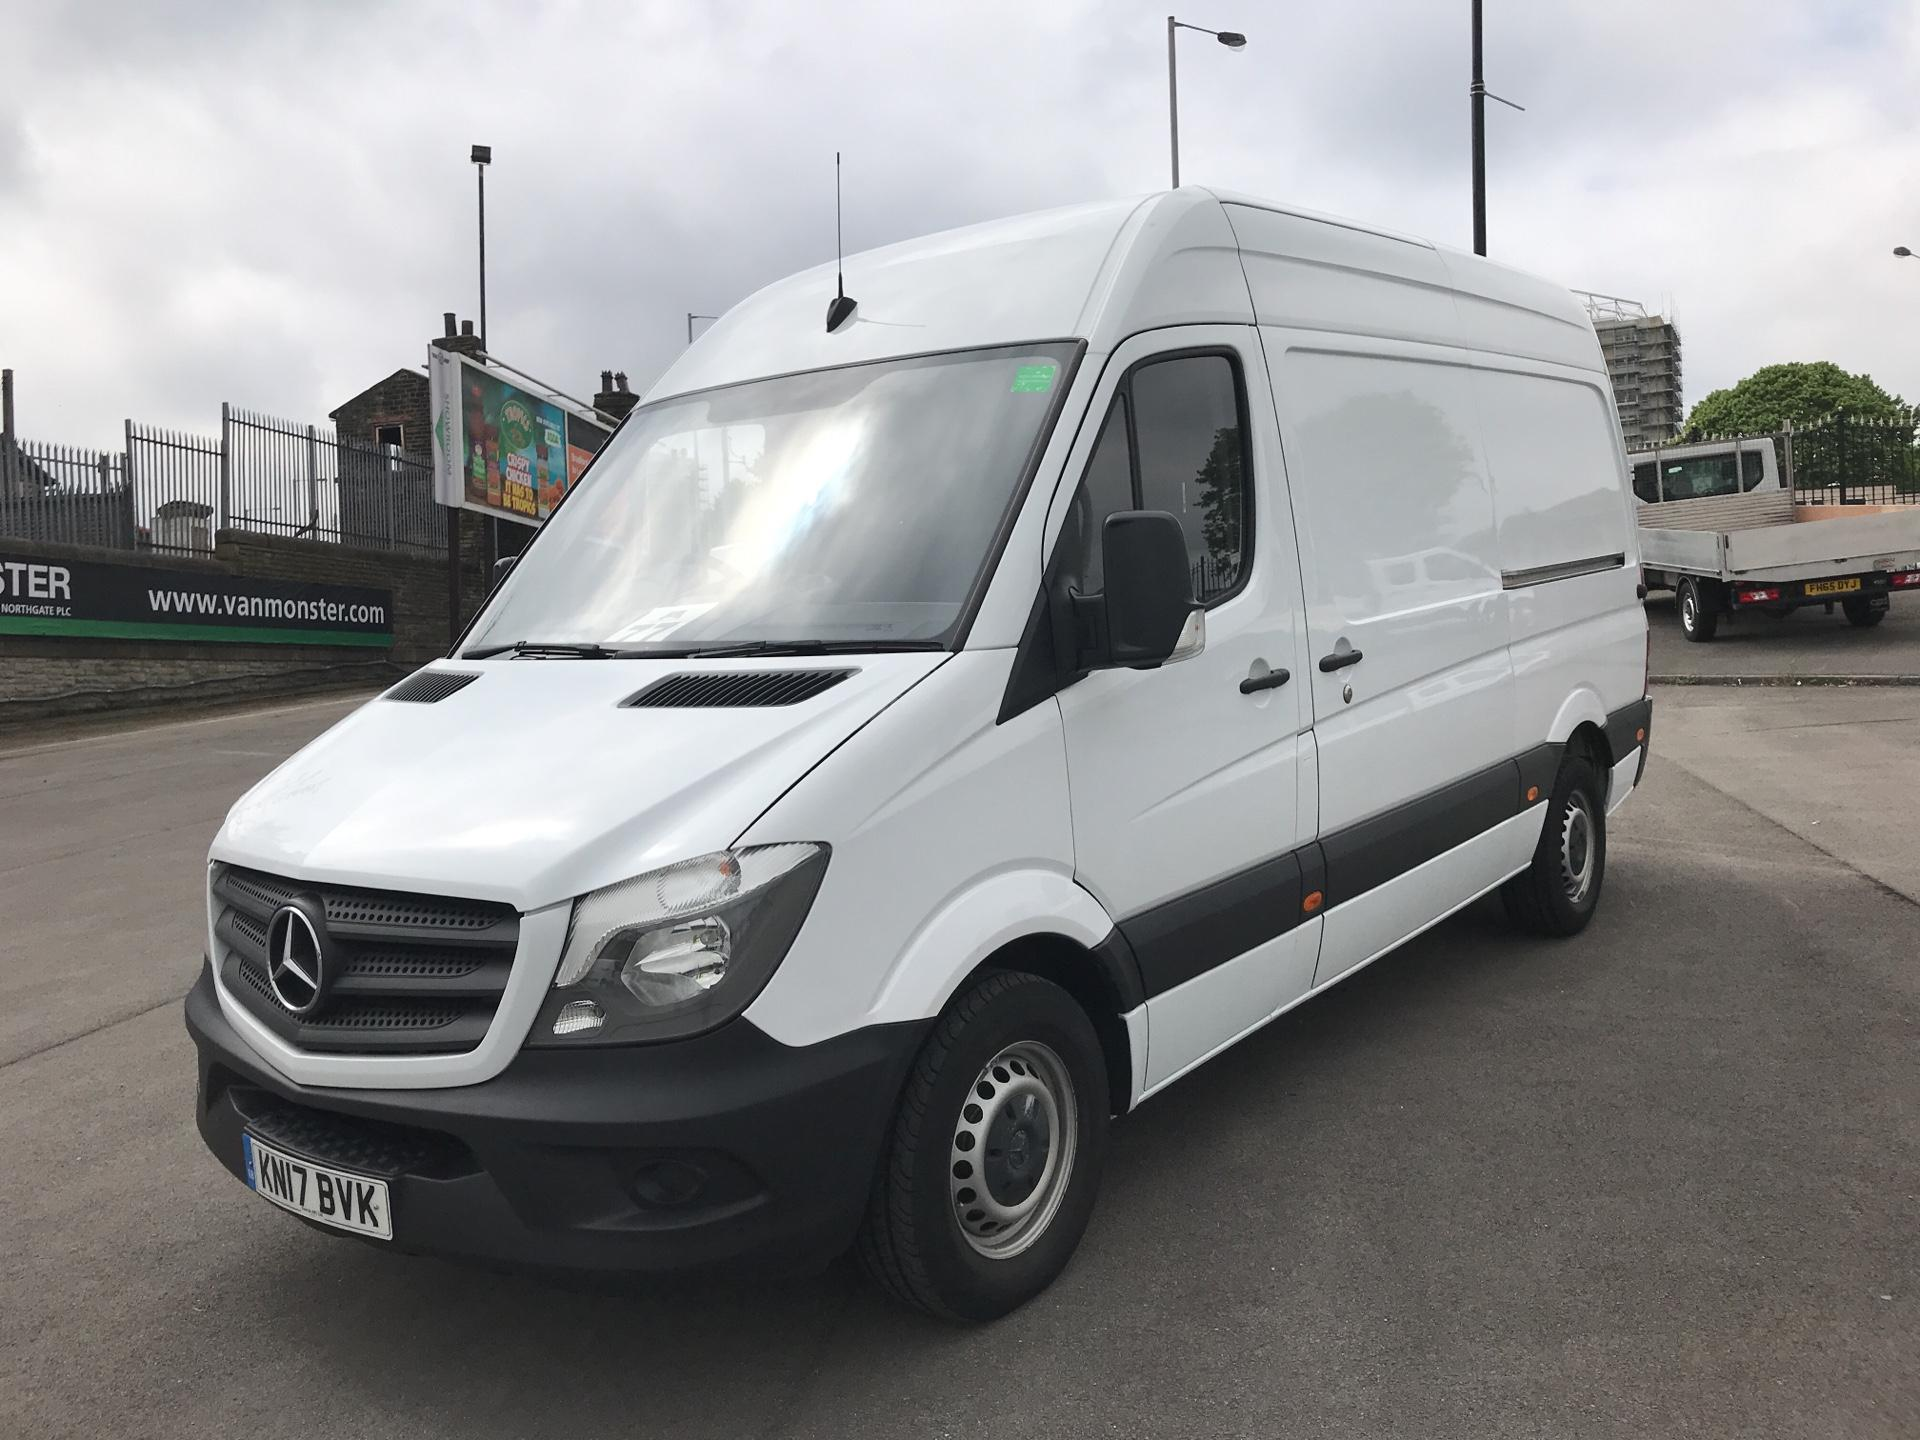 2017 Mercedes-Benz Sprinter 3.5T High Roof Van MWB (KN17BVK) Thumbnail 7